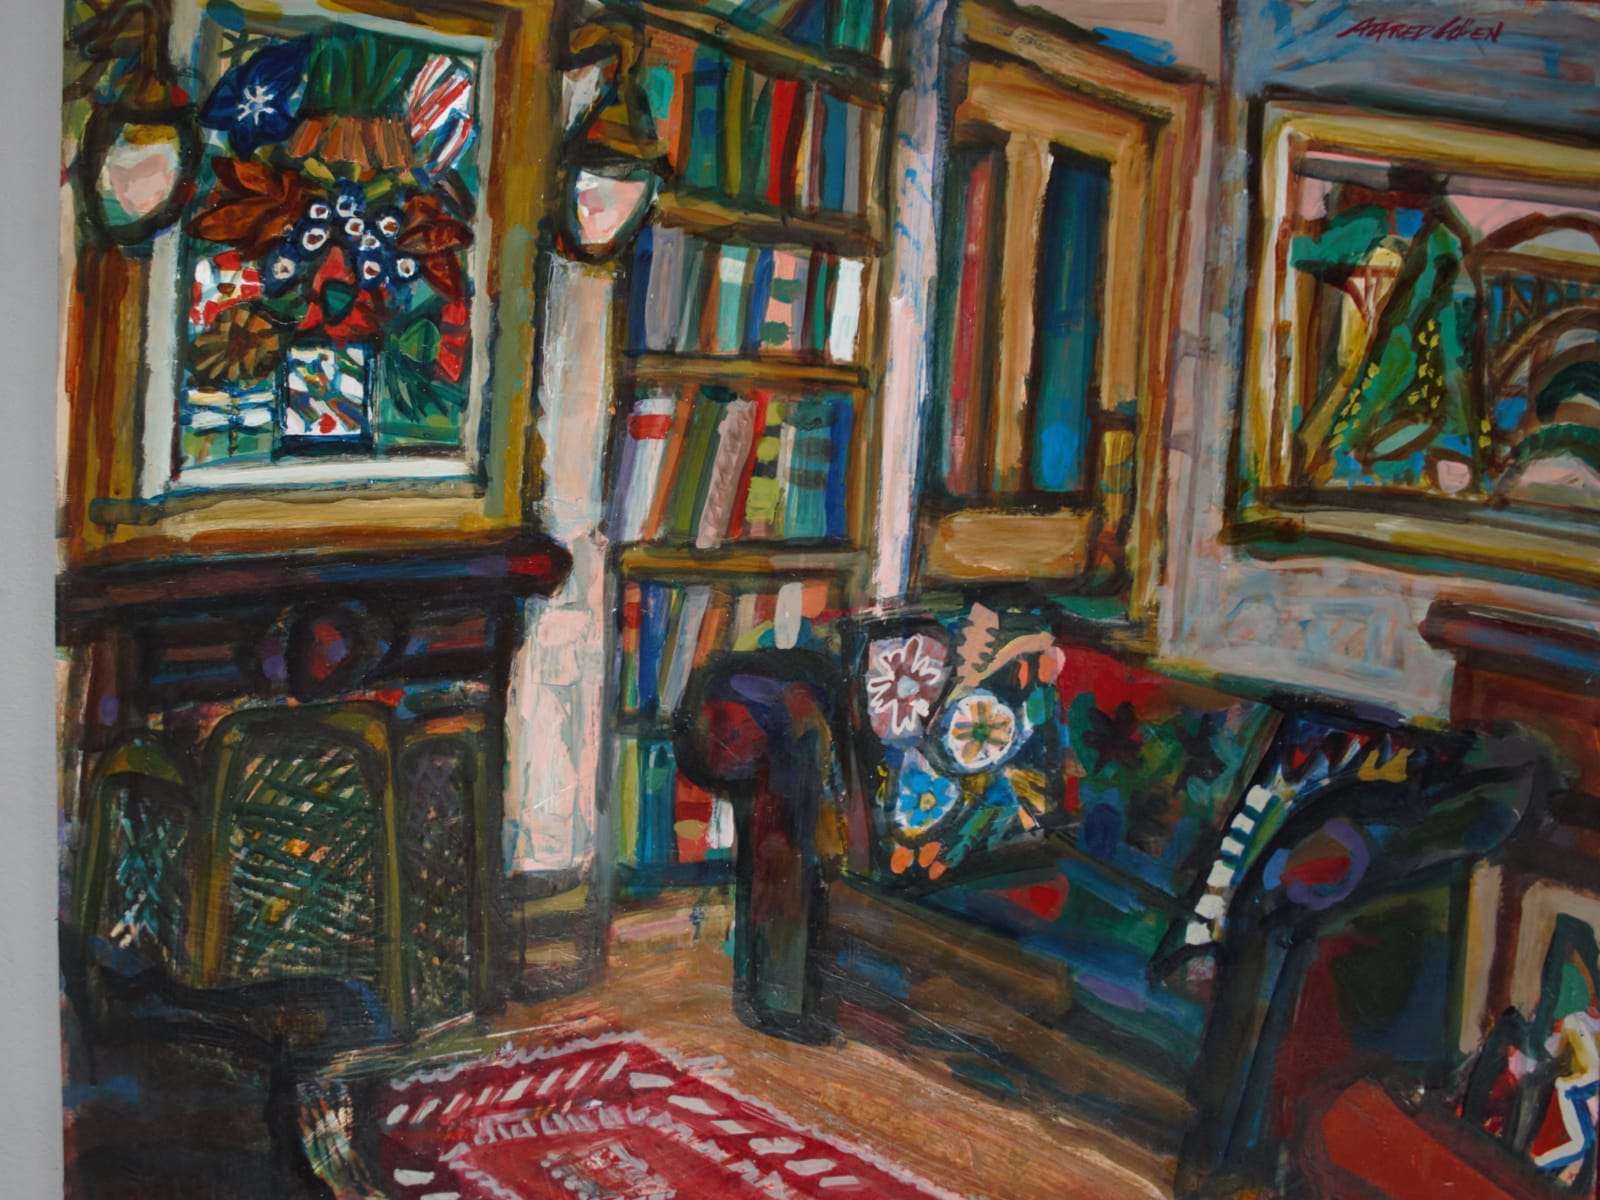 Alfred Cohen (1920-2001) The Best Room 1991 Oil on board 50.8 x 61 cm Private Collection © Estate of Alfred Cohen 2020